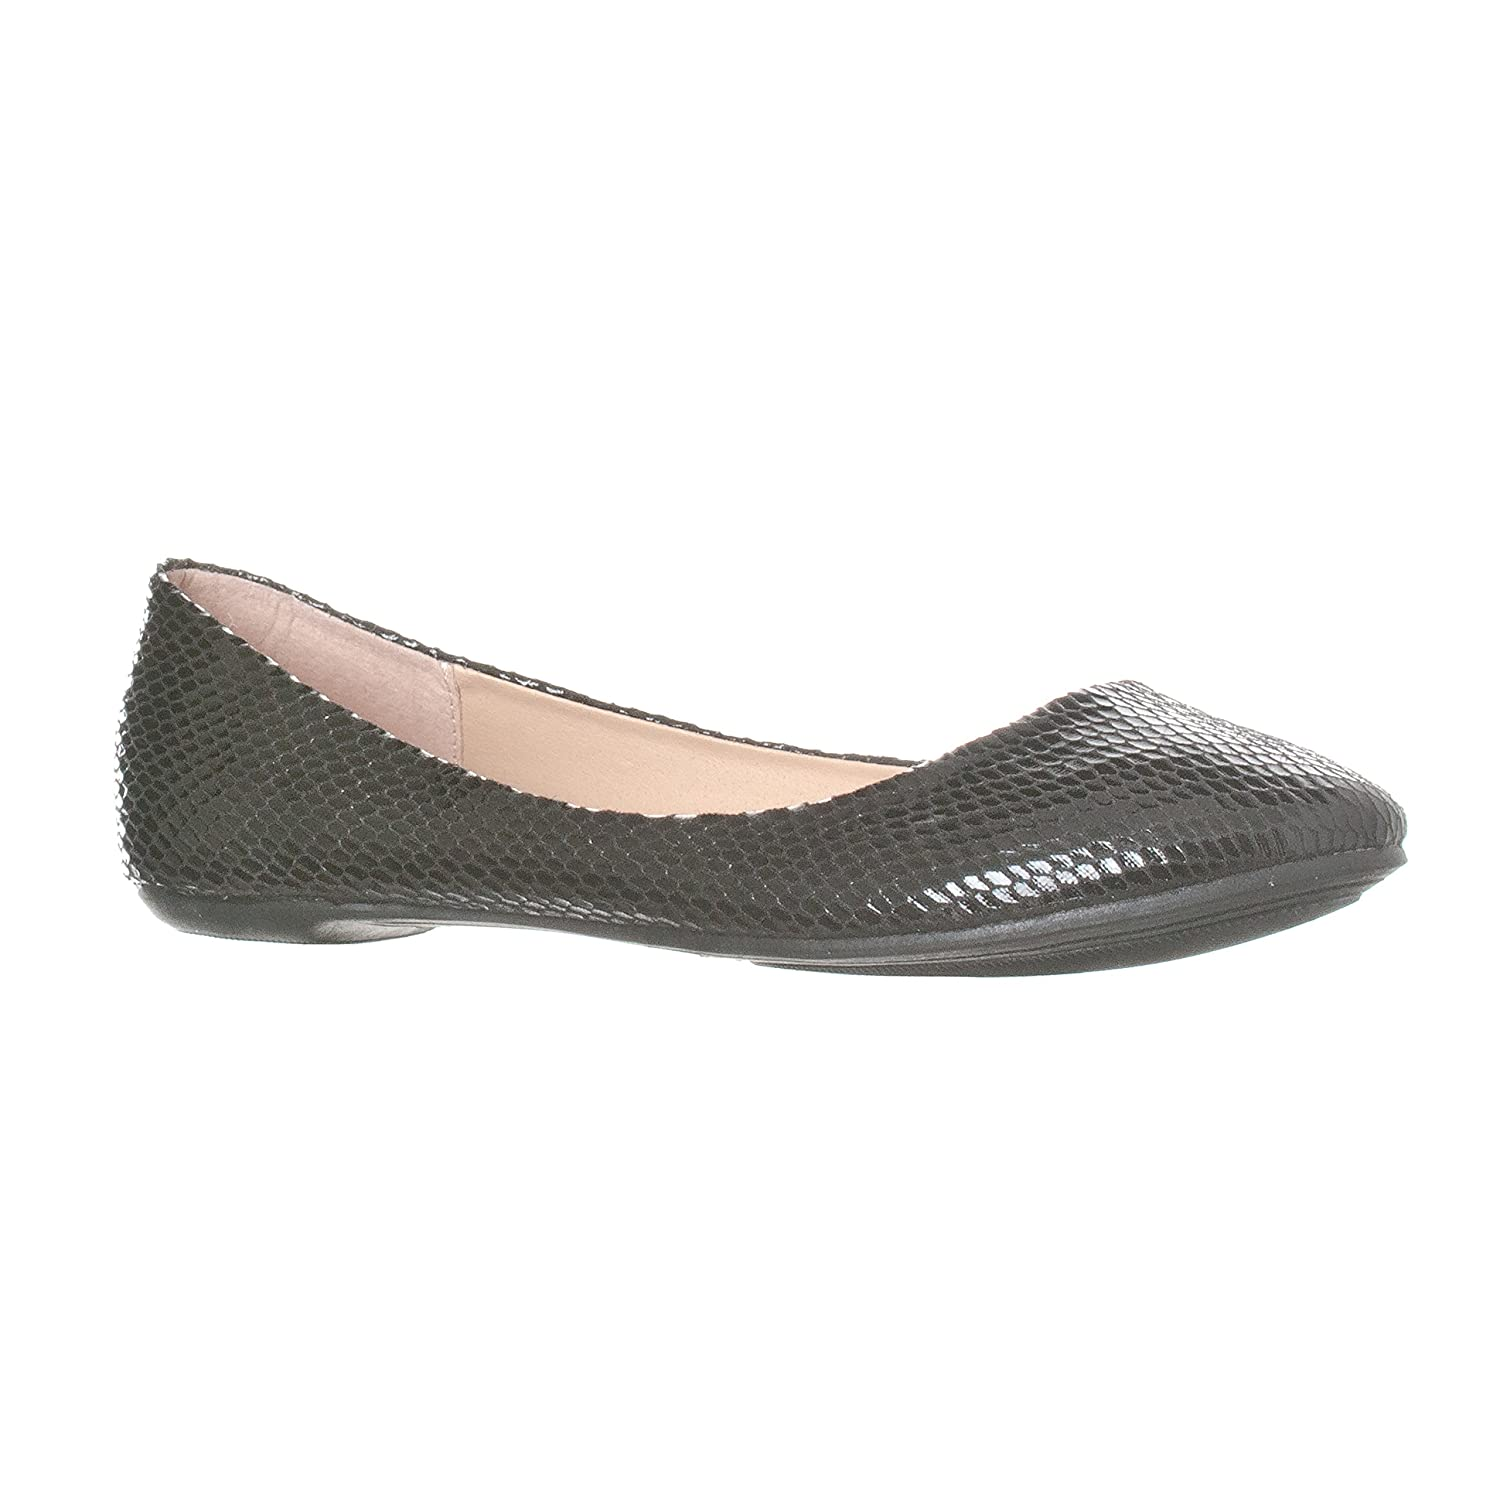 Riverberry Women's Aria Closed, Round Toe Ballet Flat Slip On Shoes B017CC81NG 8.5 M US|Black Snake